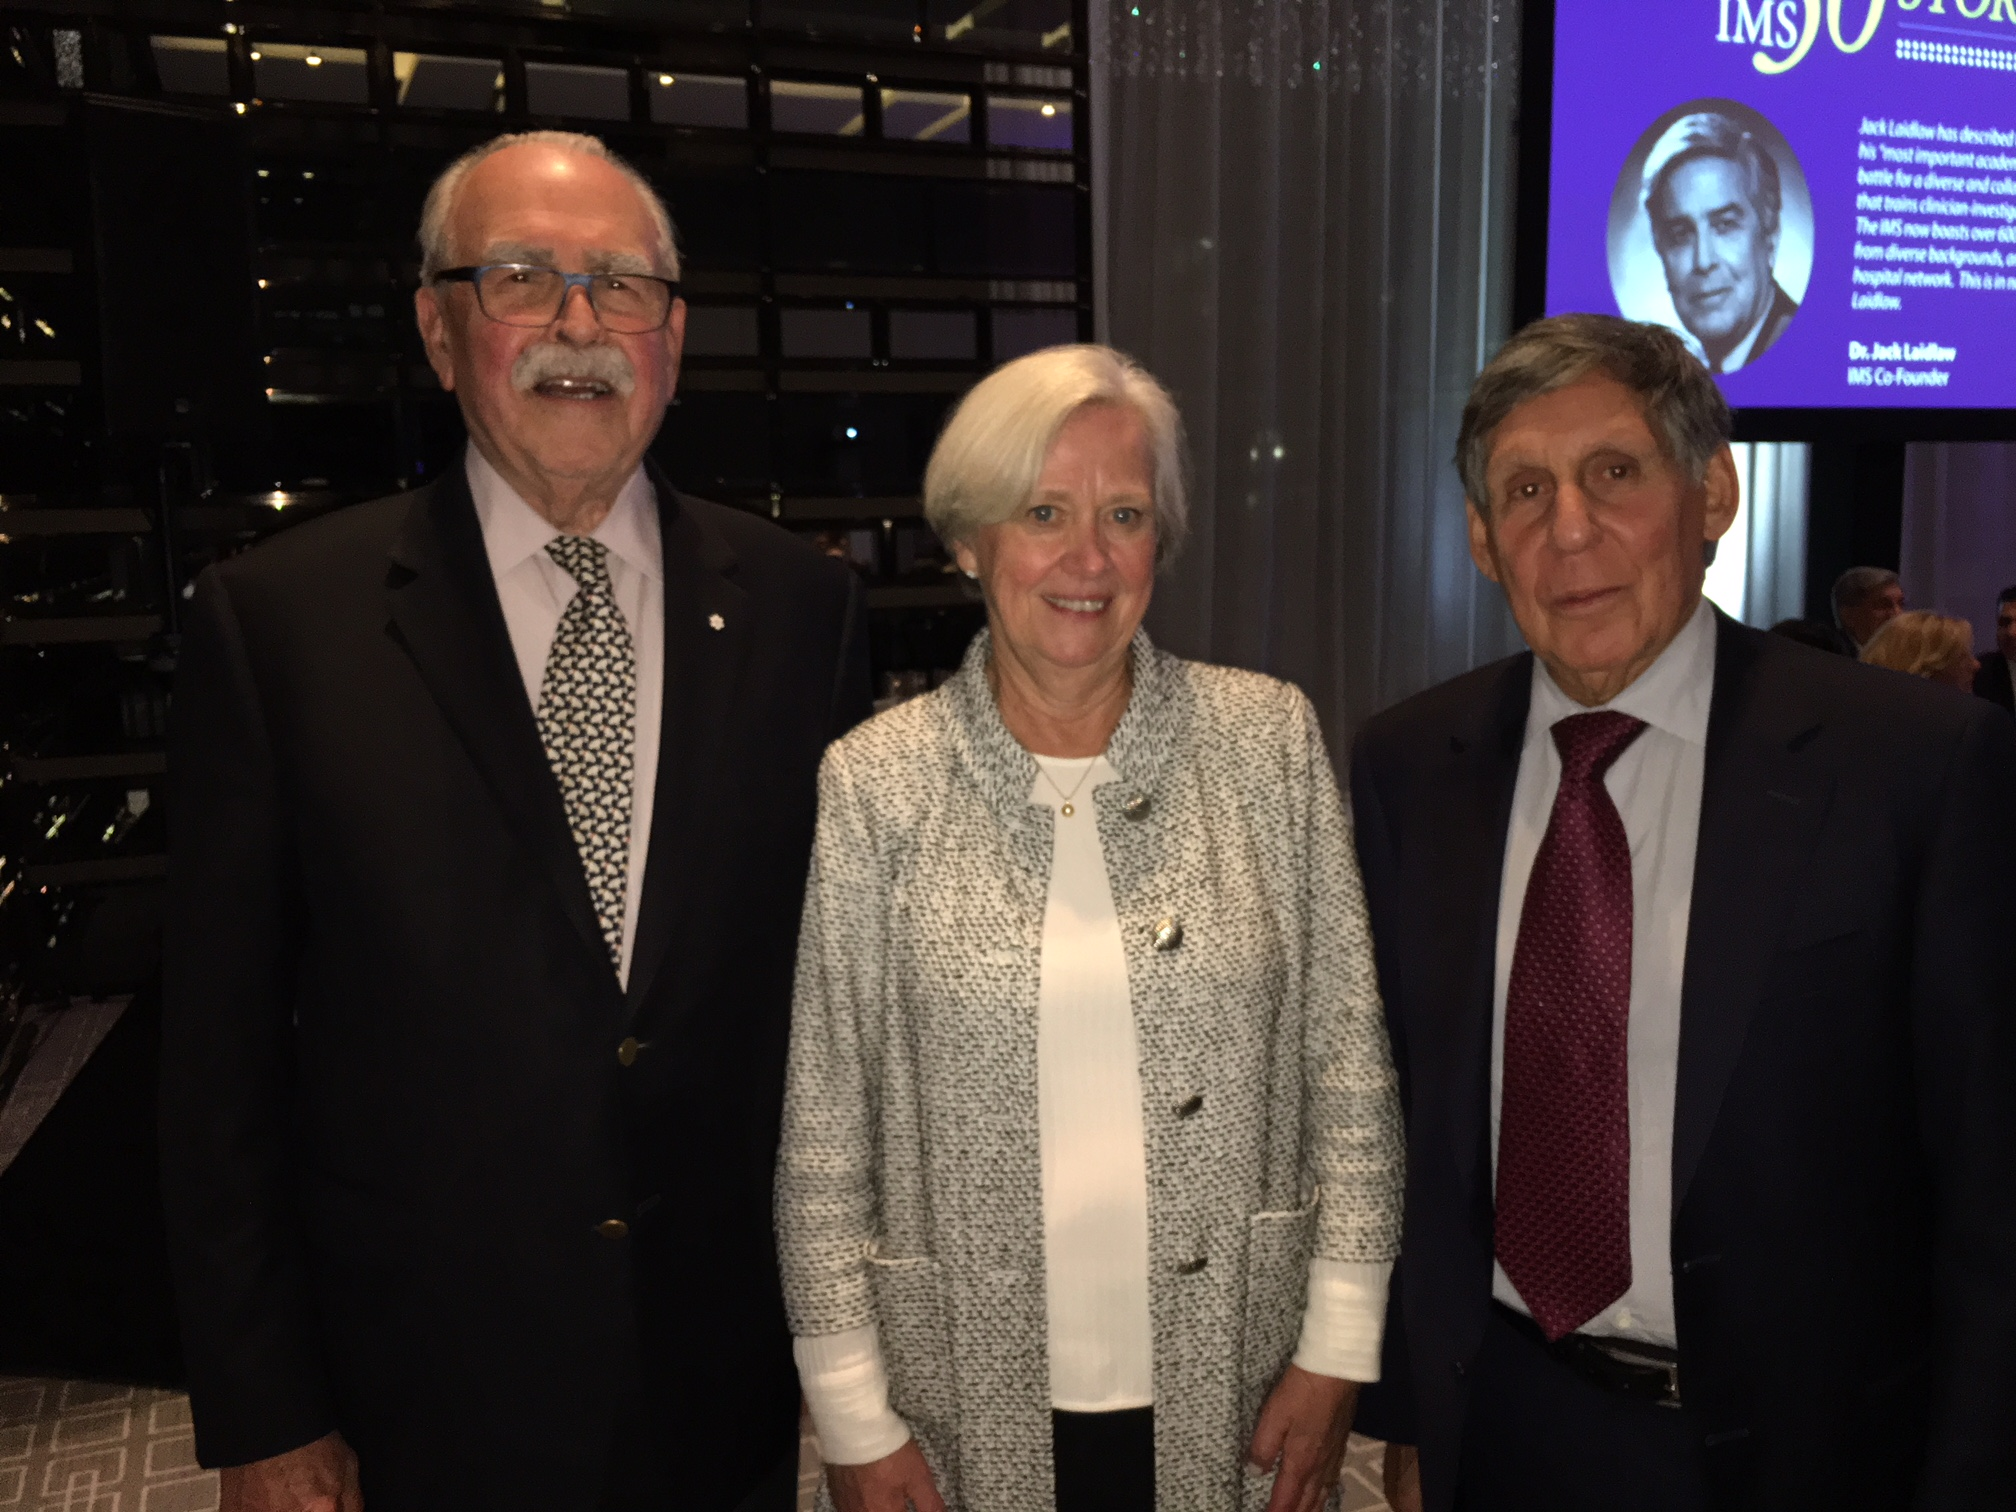 Photo - Left to Right: Dr. Aubie Angel, Dr. Shirley M. Tilghman, Dr. Mel Silverman - IMS50 at U of T - October 3, 2018